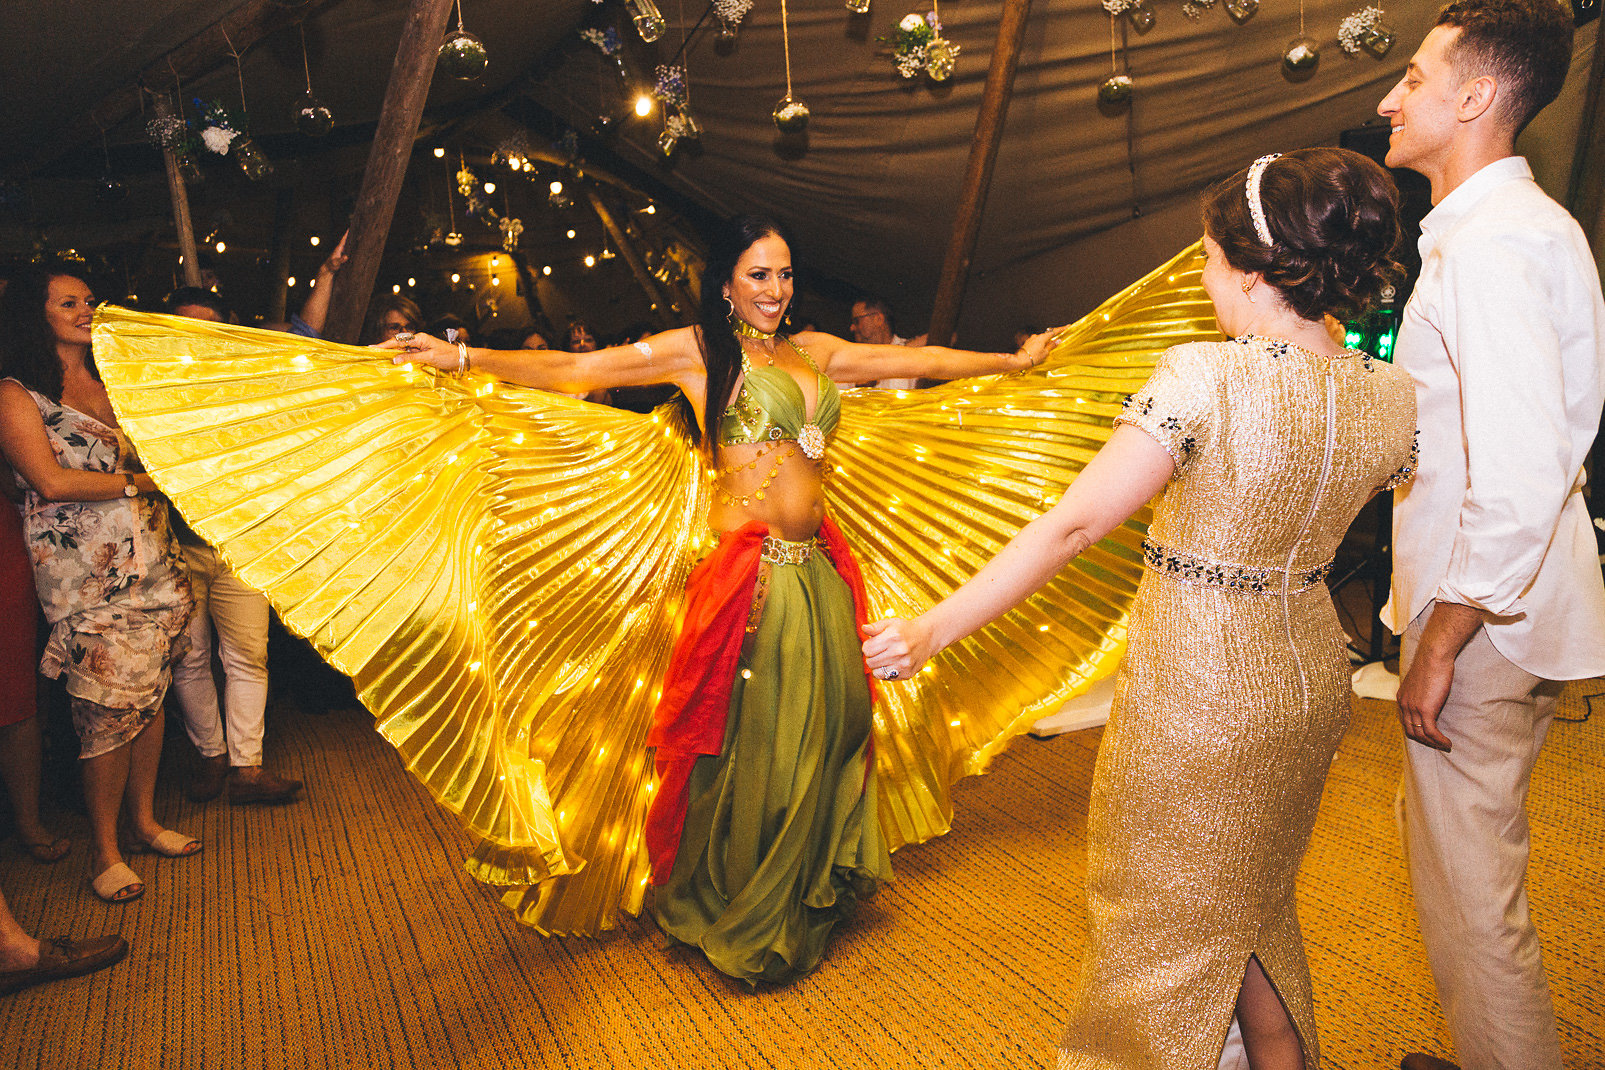 belly dancing, Gold Coast wedding, tipi wedding, gold coast, large marquee, event hire, tipi hire, wedding reception